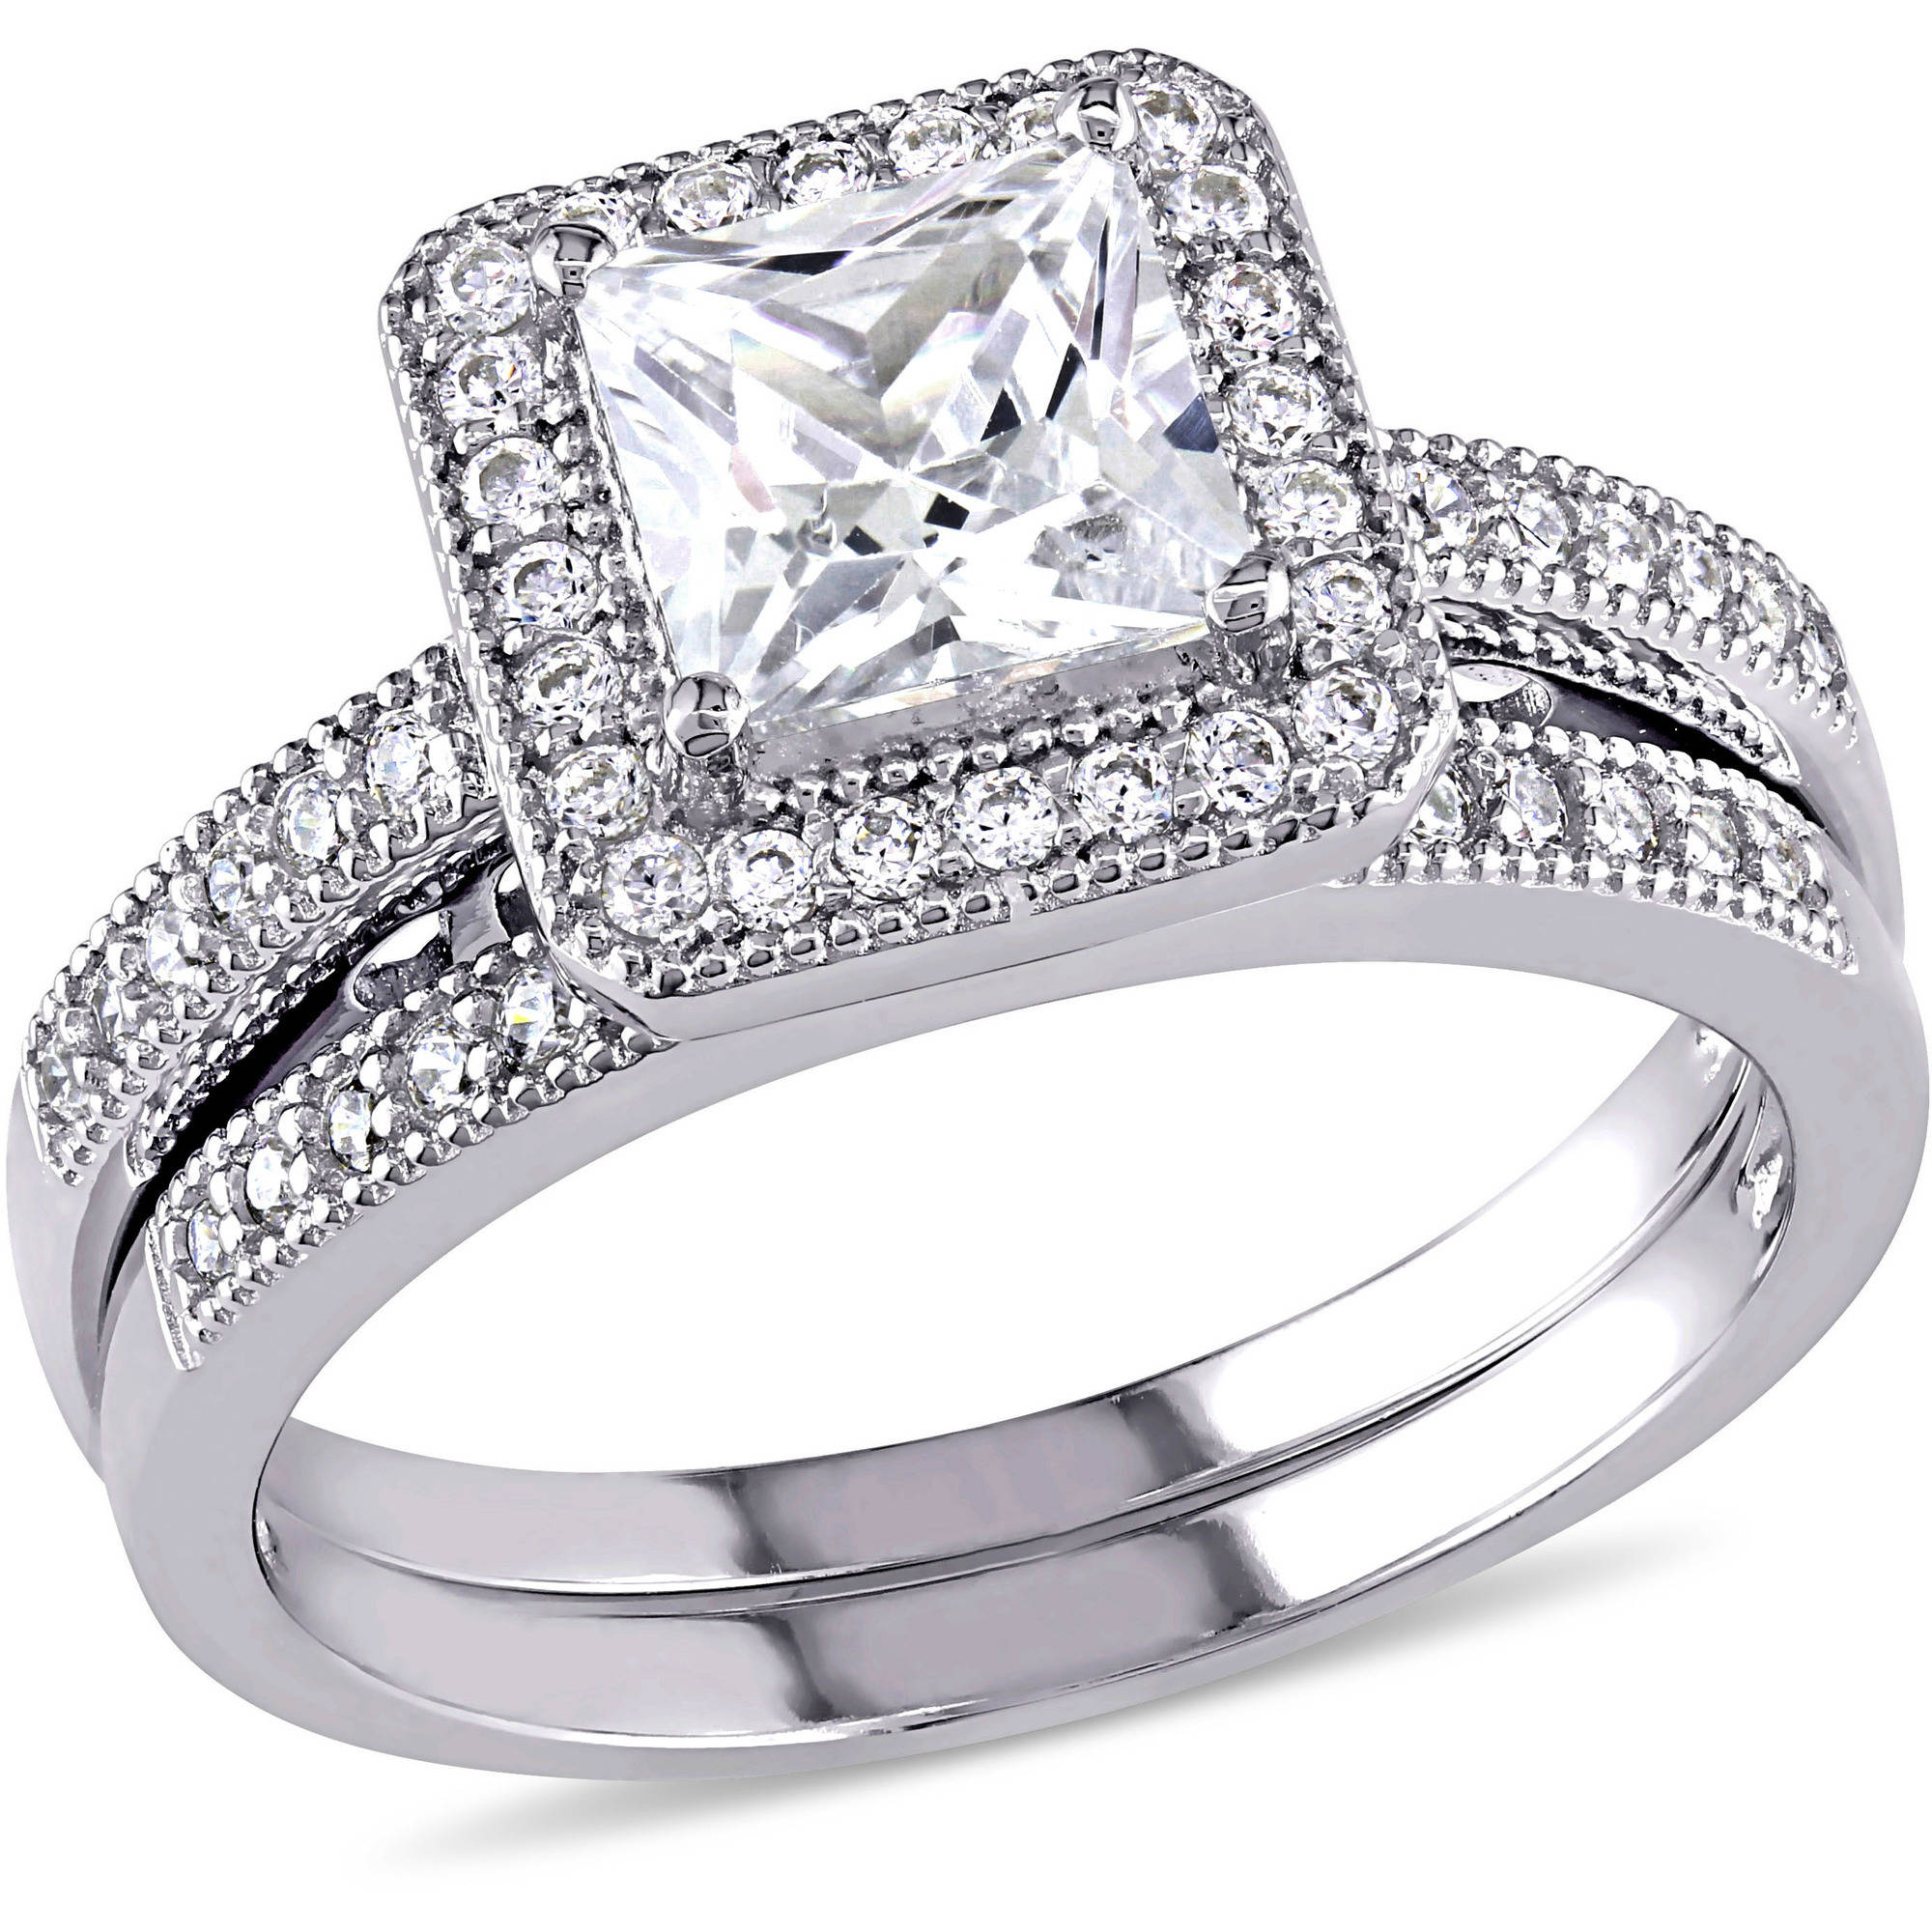 Miabella 1-1/4 Carat T.G.W. Princess and Round-Cut Cubic Zirconia Sterling Silver Bridal Set